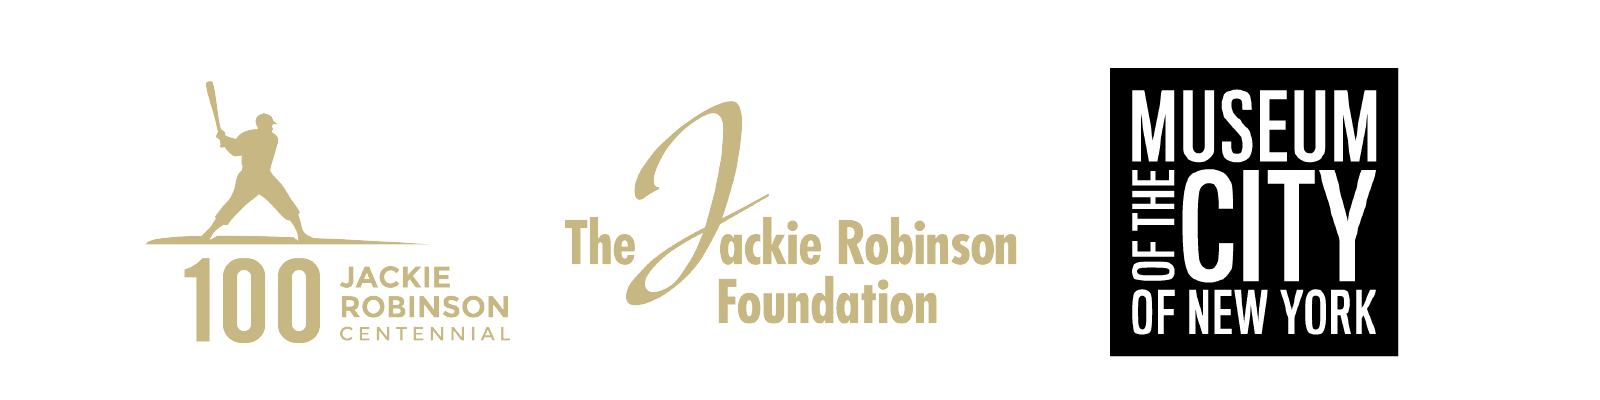 Jackie Robinson Centennial logo, Jackie Robinson Foundation logo, Museum of the City of New York logo